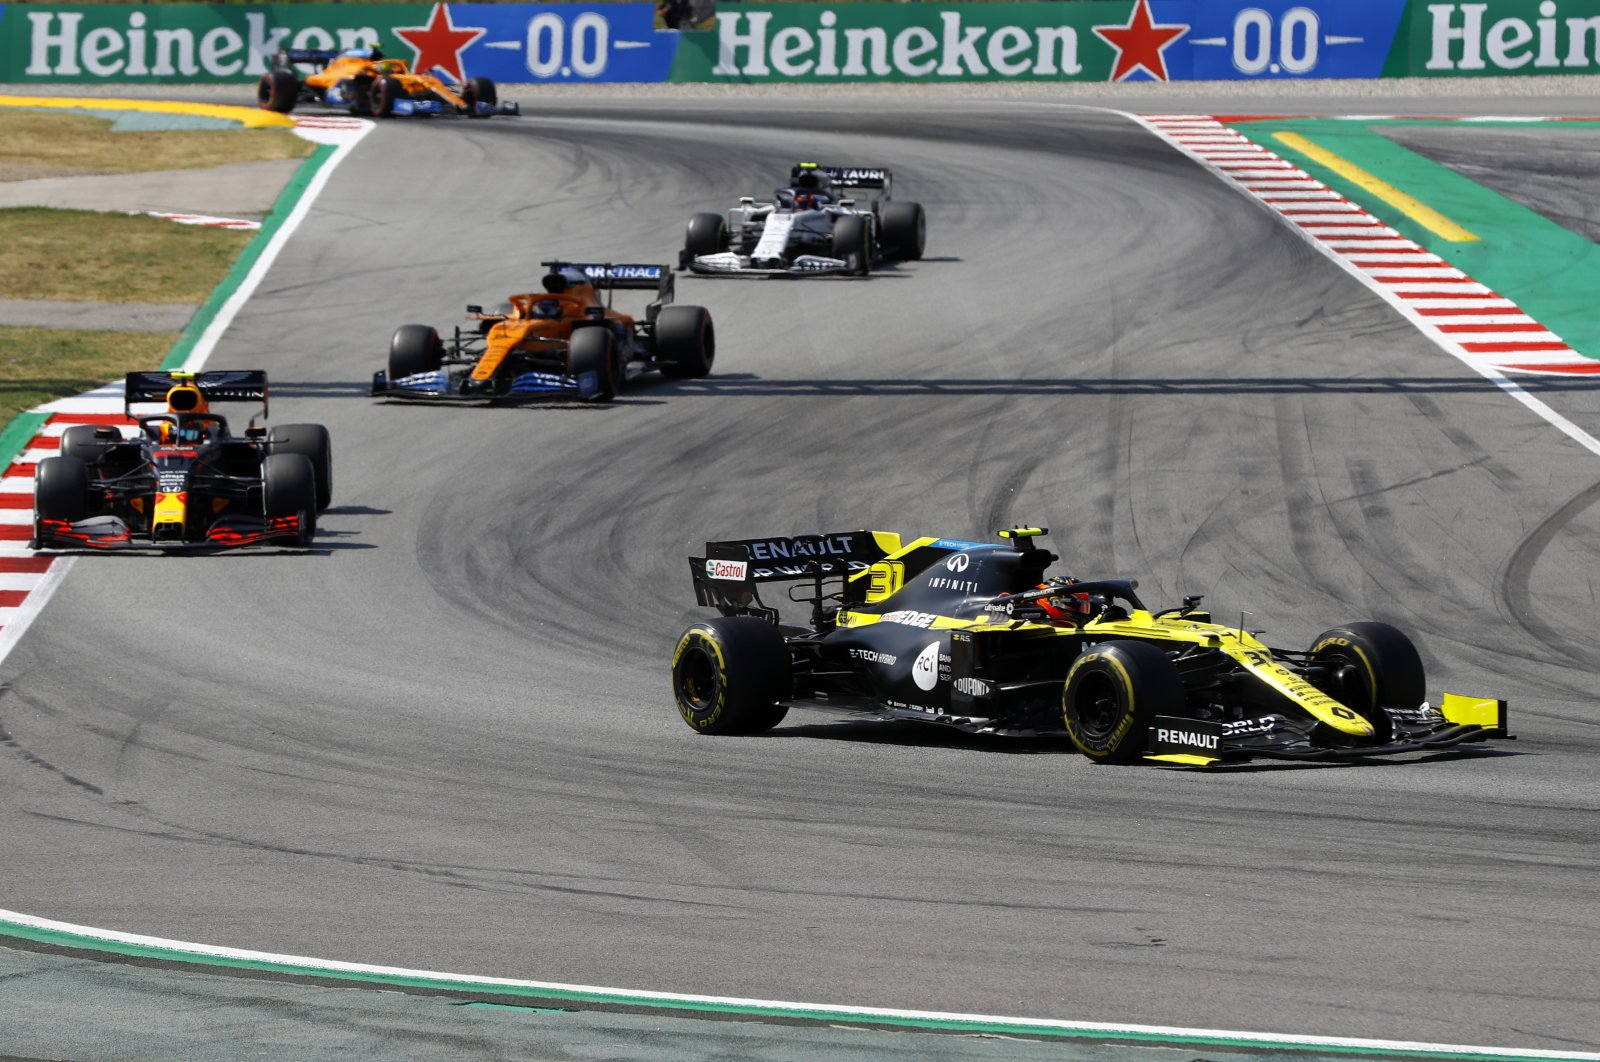 Renault driver Esteban Ocon steers his car during the Formula One Spanish Grand Prix in Montmelo, Spain, Aug. 16, 2020. (AP Photo)